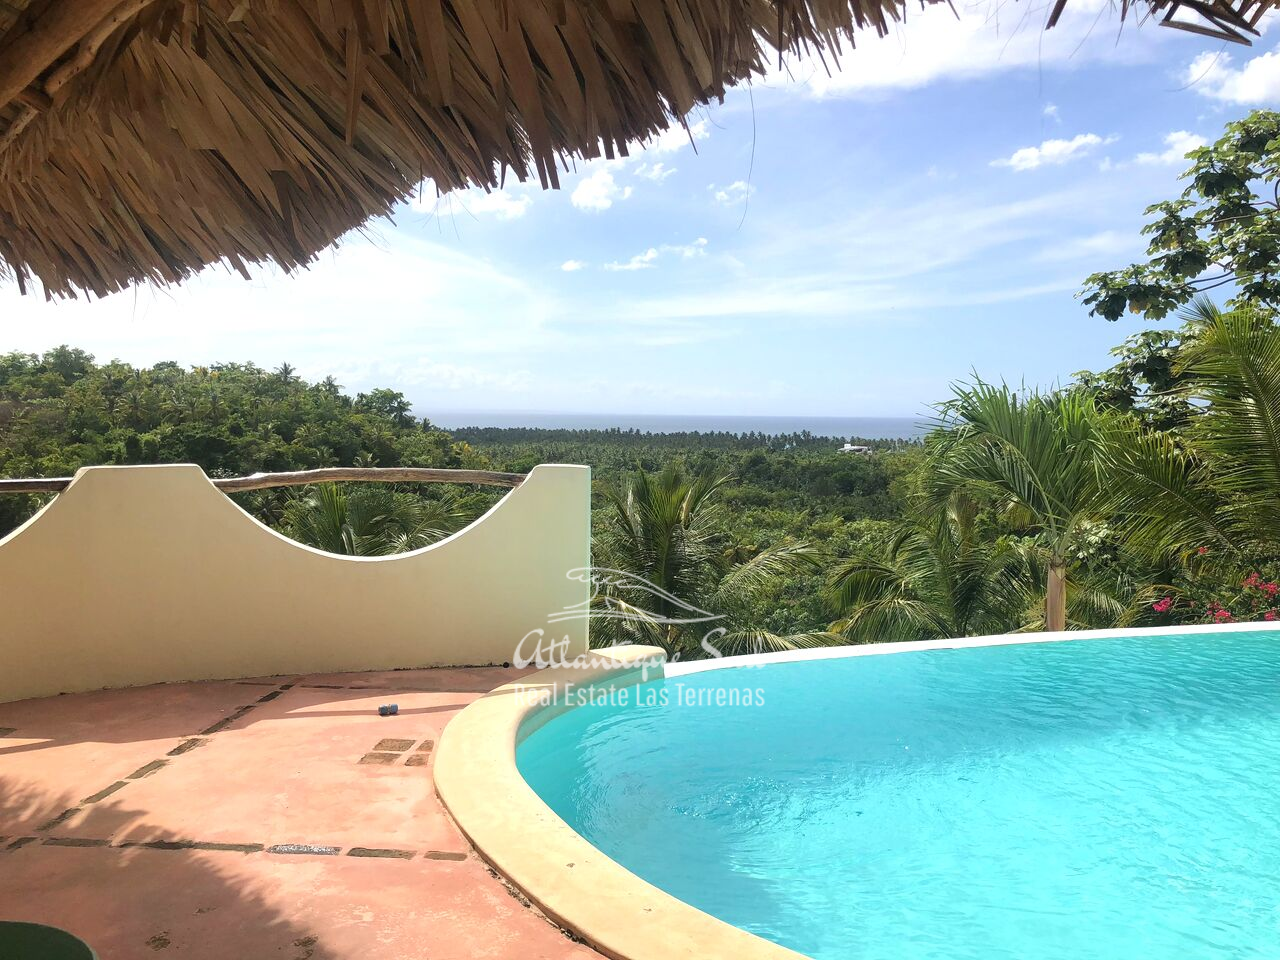 caribbean-style-villa-on-hill-for-sale6.png